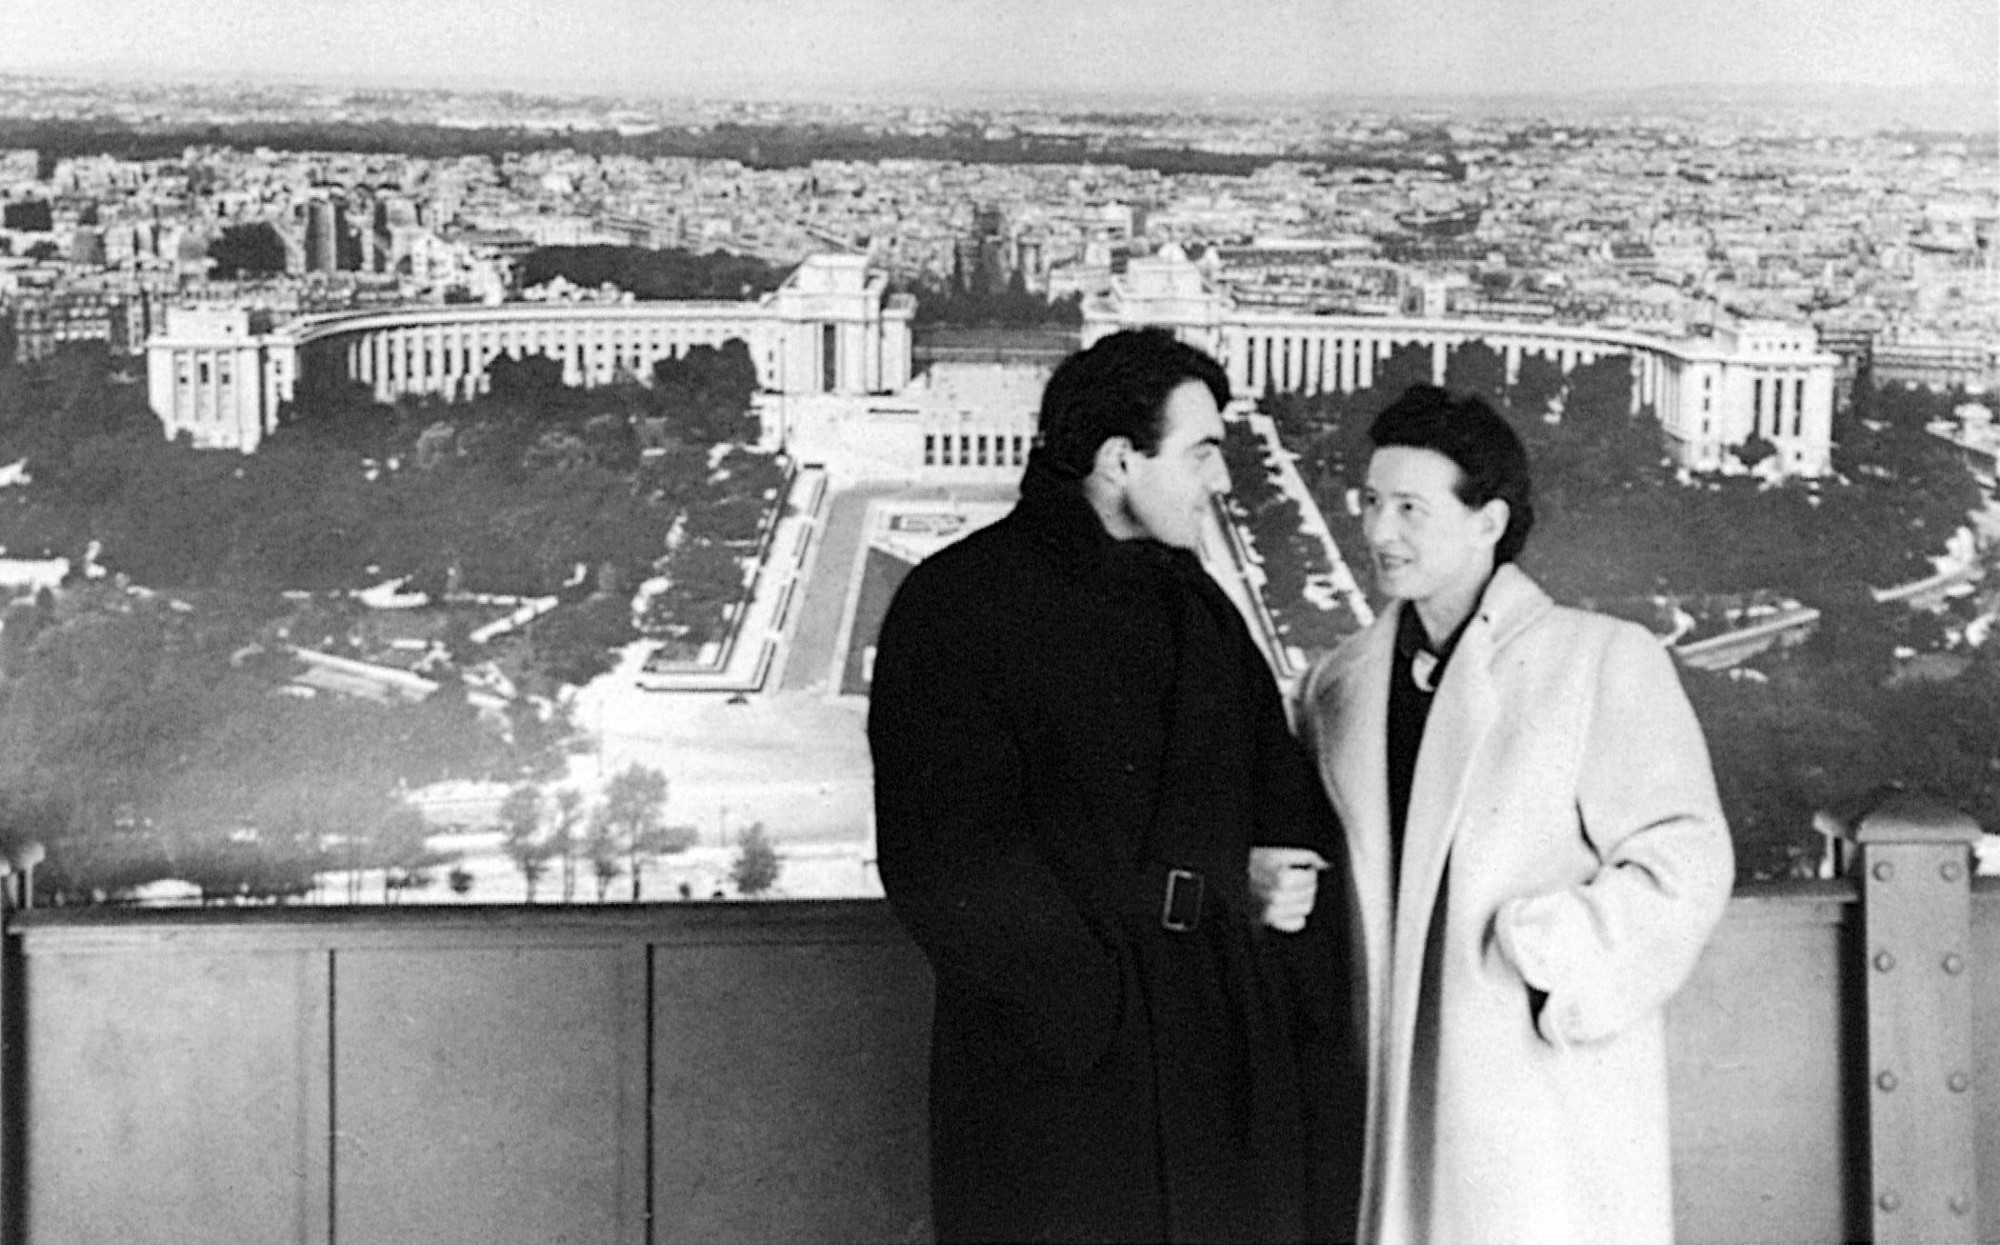 OSCAR     NOMINEE CLAUDE LANZMANN  SPECTRES OF THE SHOAH DEBUTS MAY 2 Photo  Claude Lanzmann and Simone de Beauvoir  Courtesy of HBO   Please  note this is a promotional photo for press only